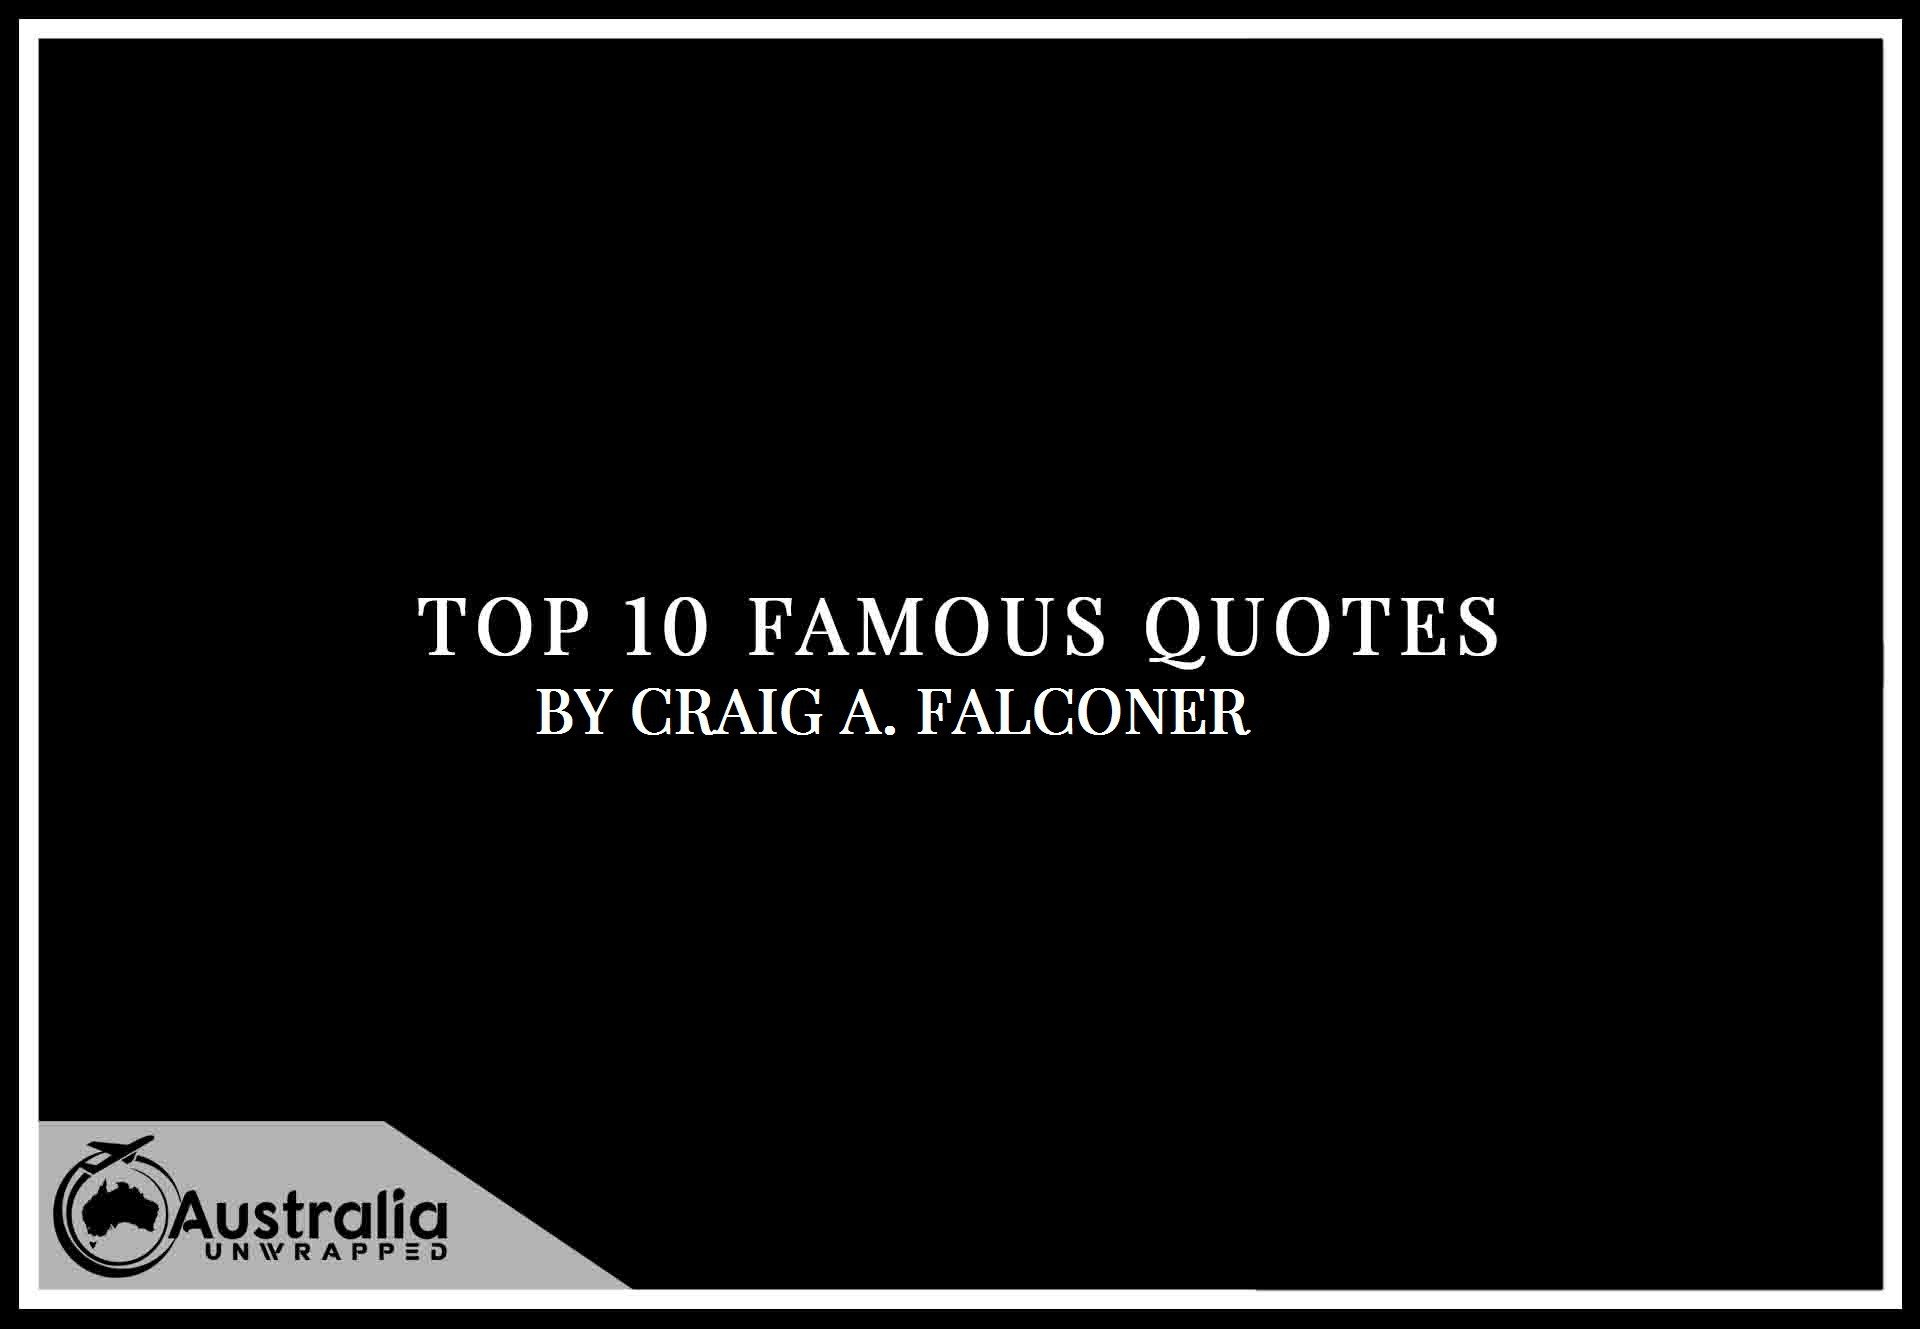 Craig A. Falconer's Top 10 Popular and Famous Quotes